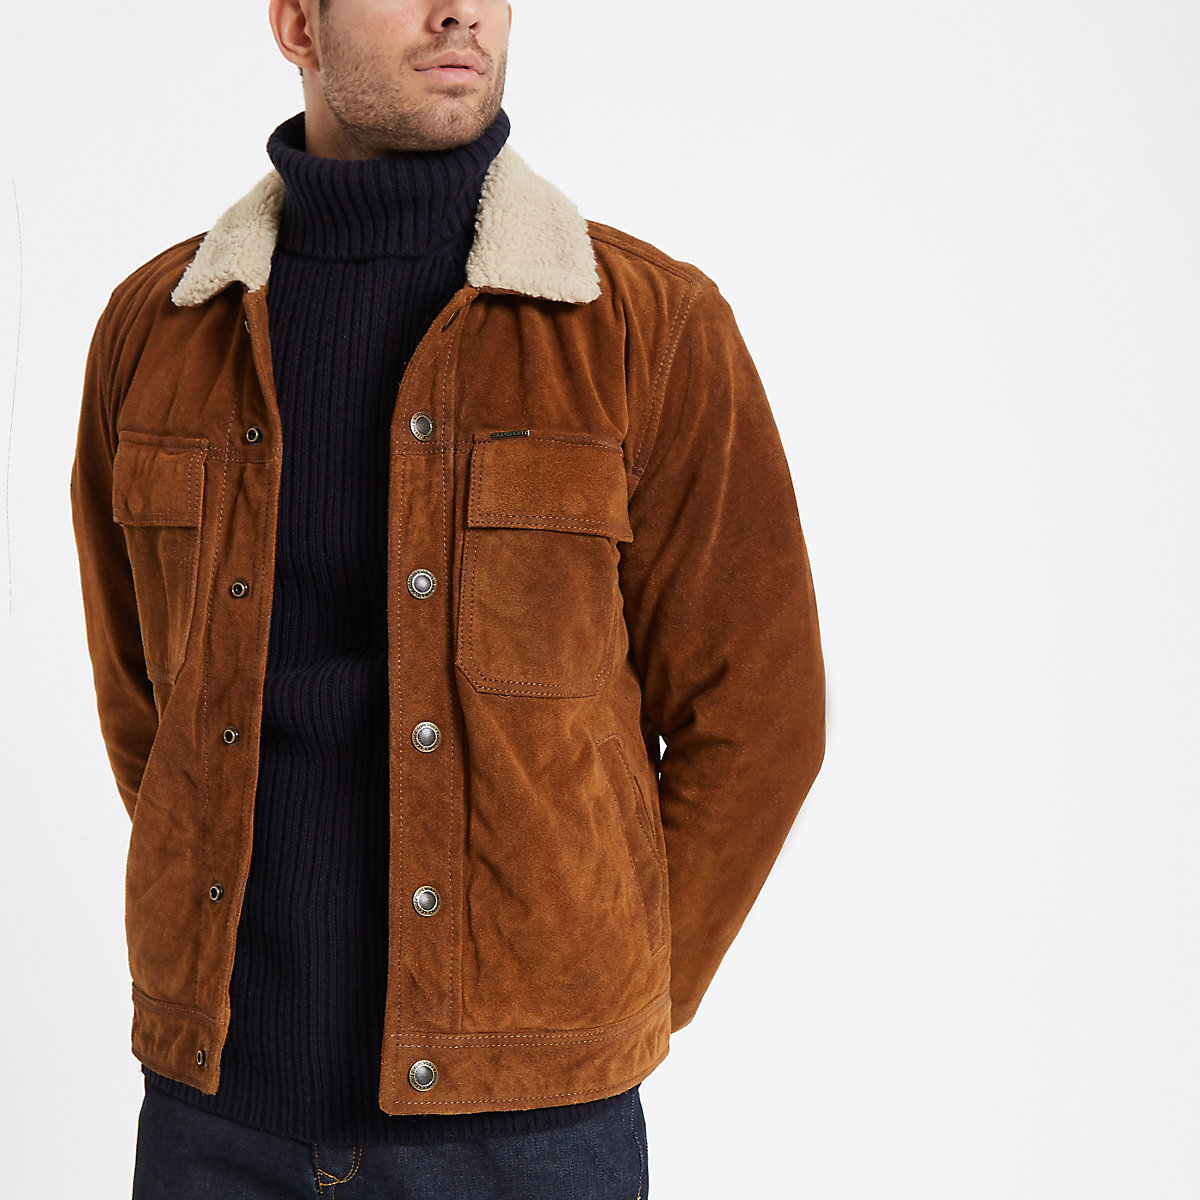 Superdry tan suede borg collar jacket